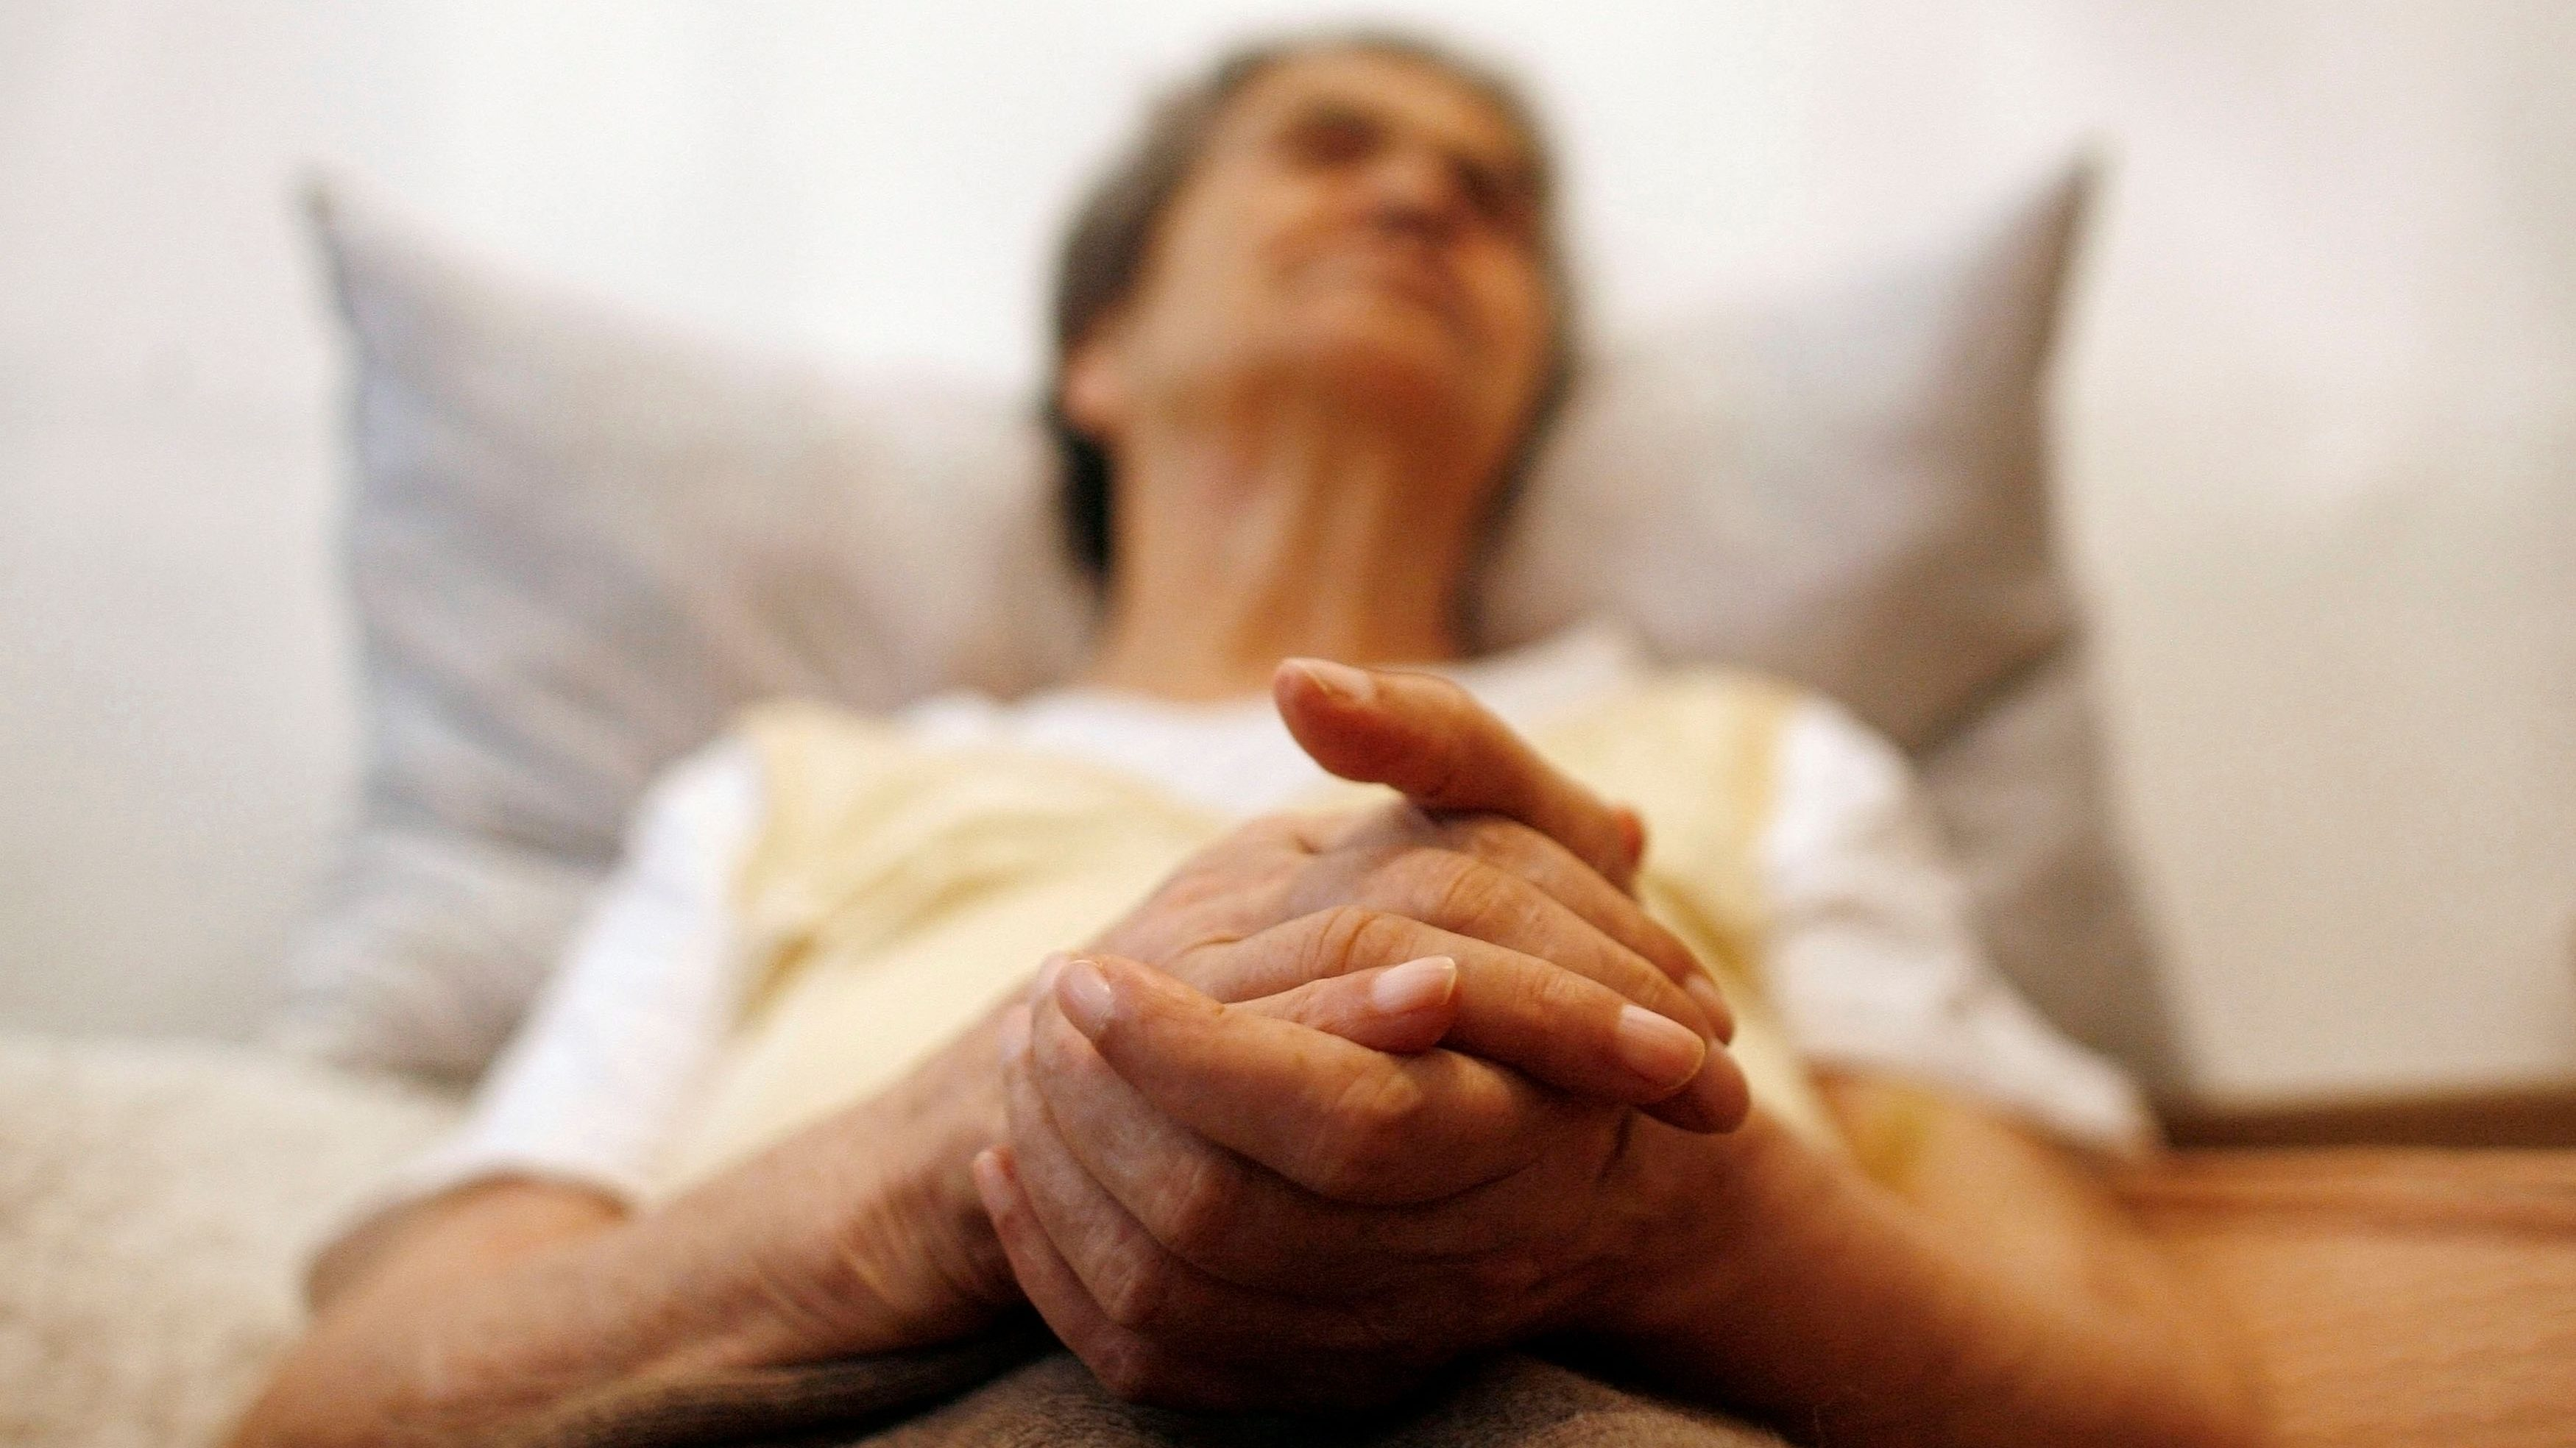 A person with dementia related to Alzheimer's laying in bed